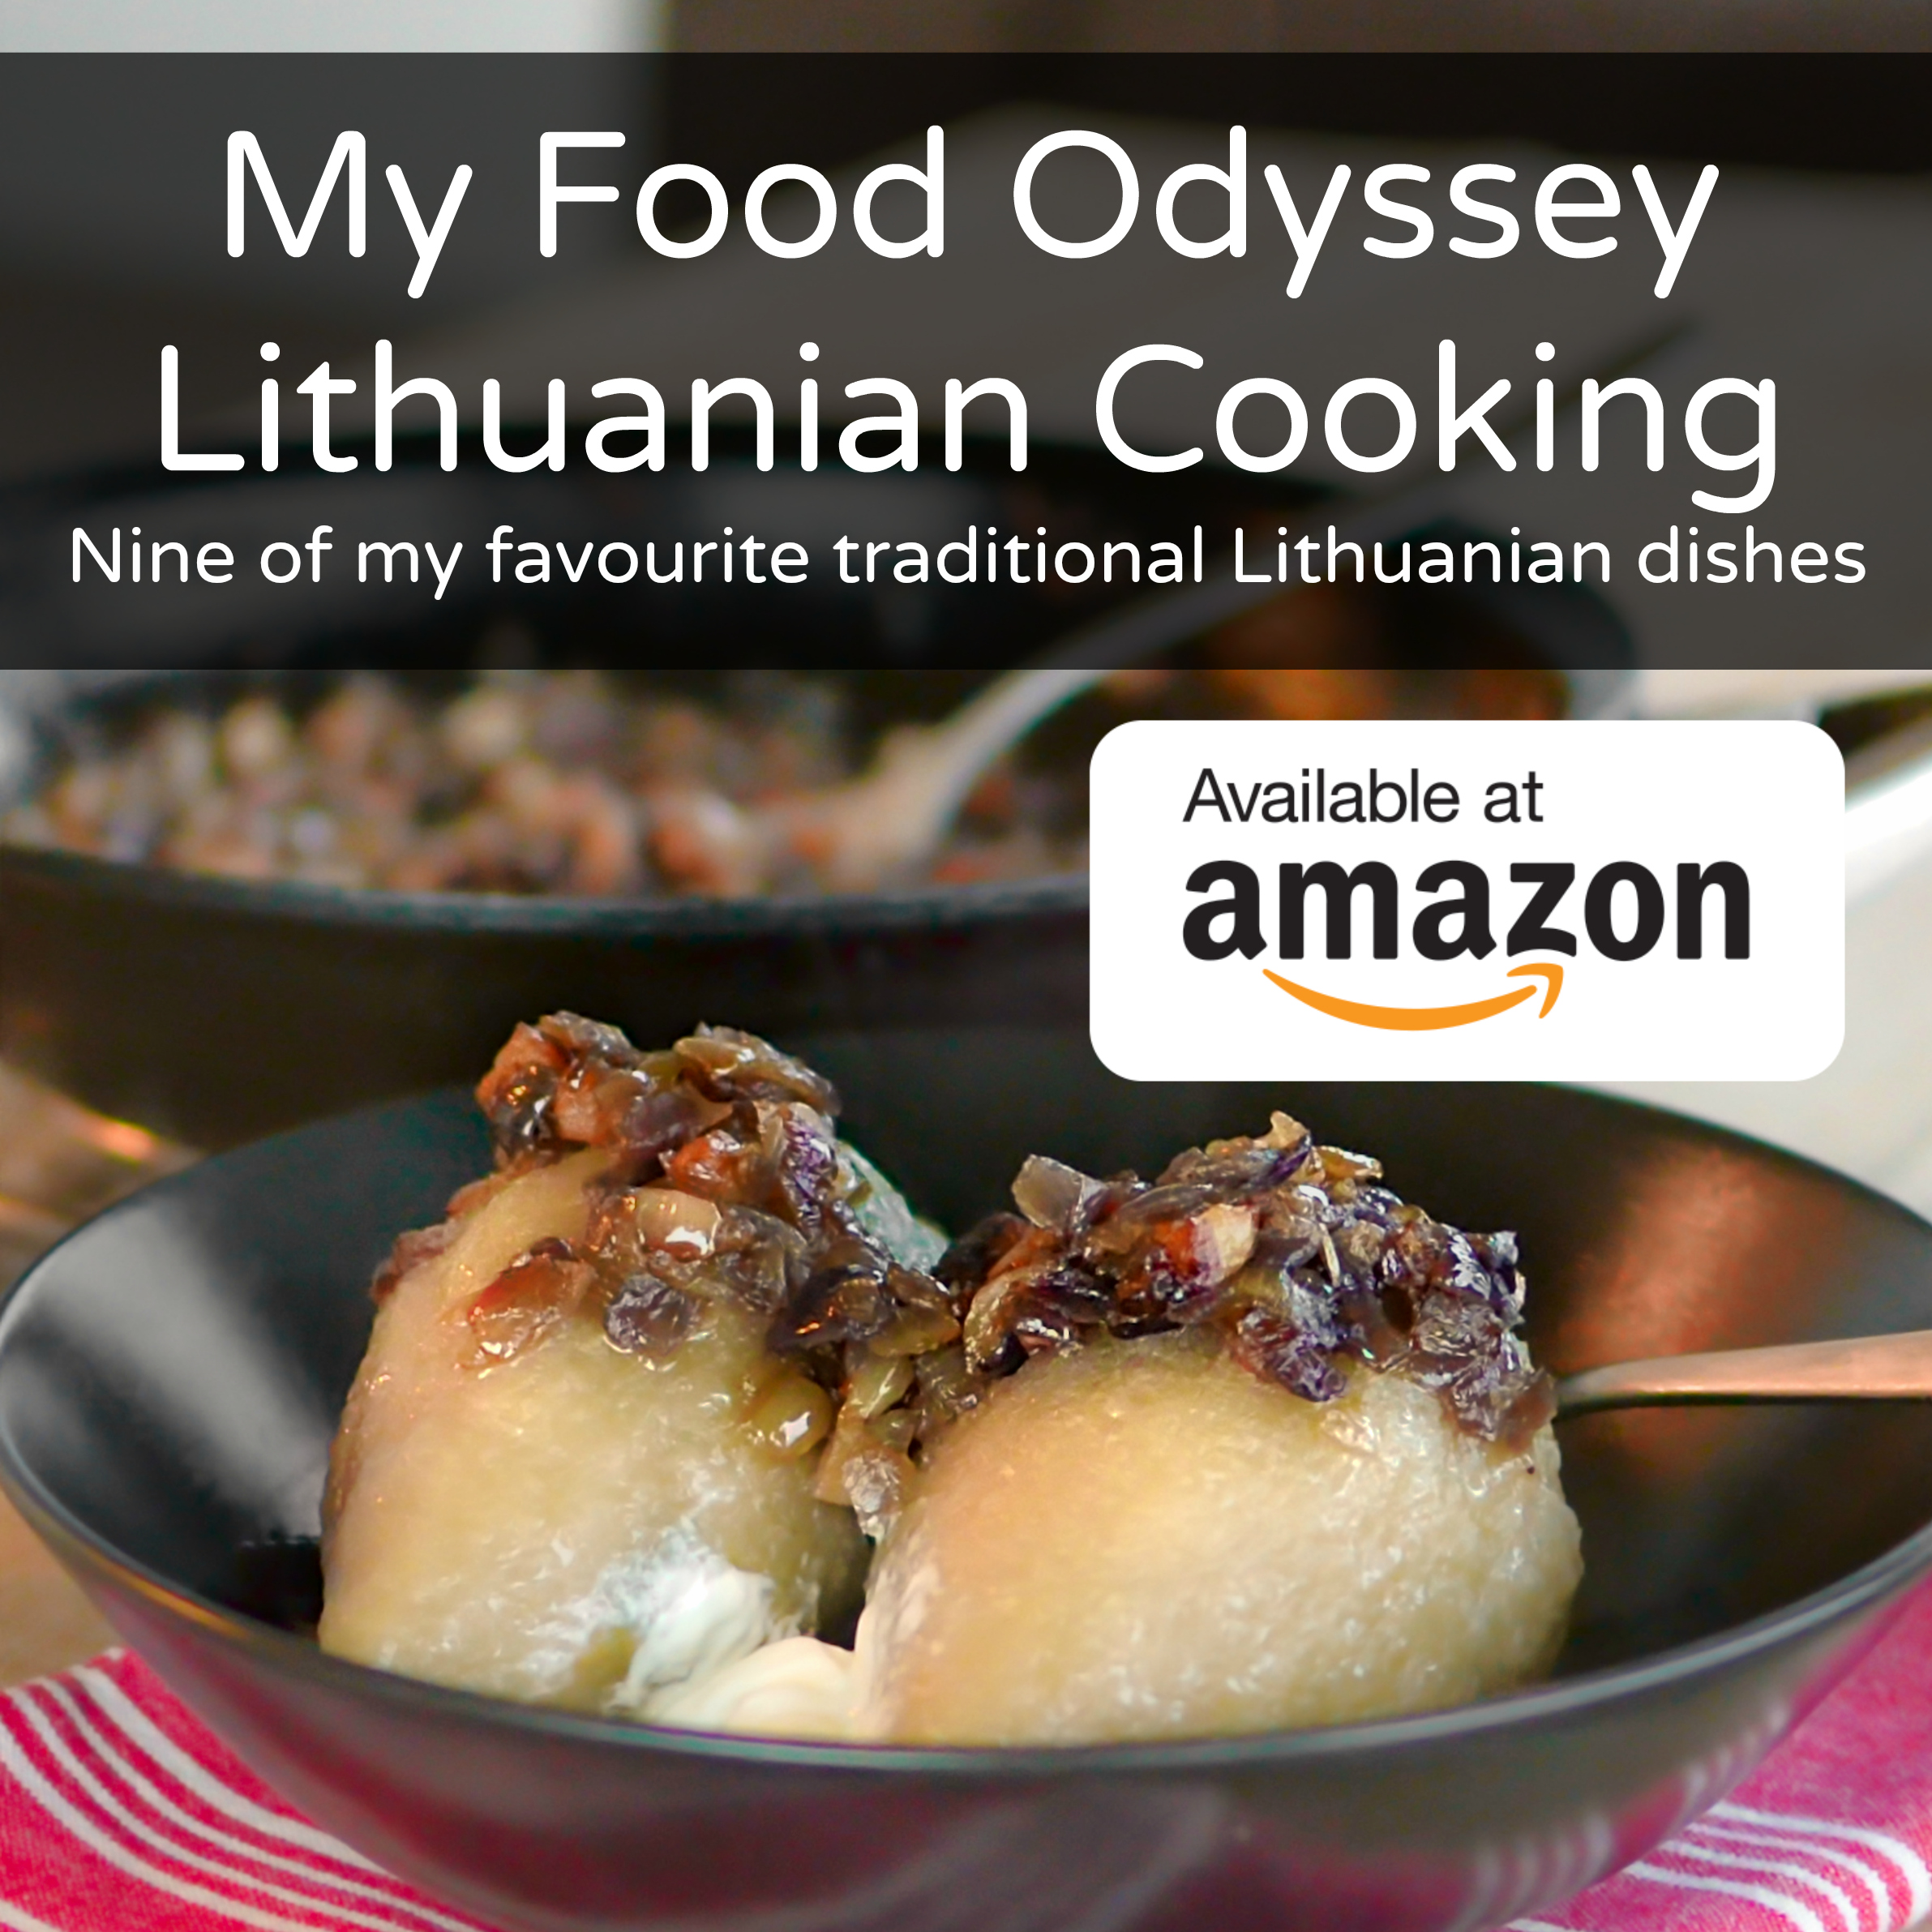 My Food Odyssey Lithuanian Cooking Book | www.myfoododyssey.com